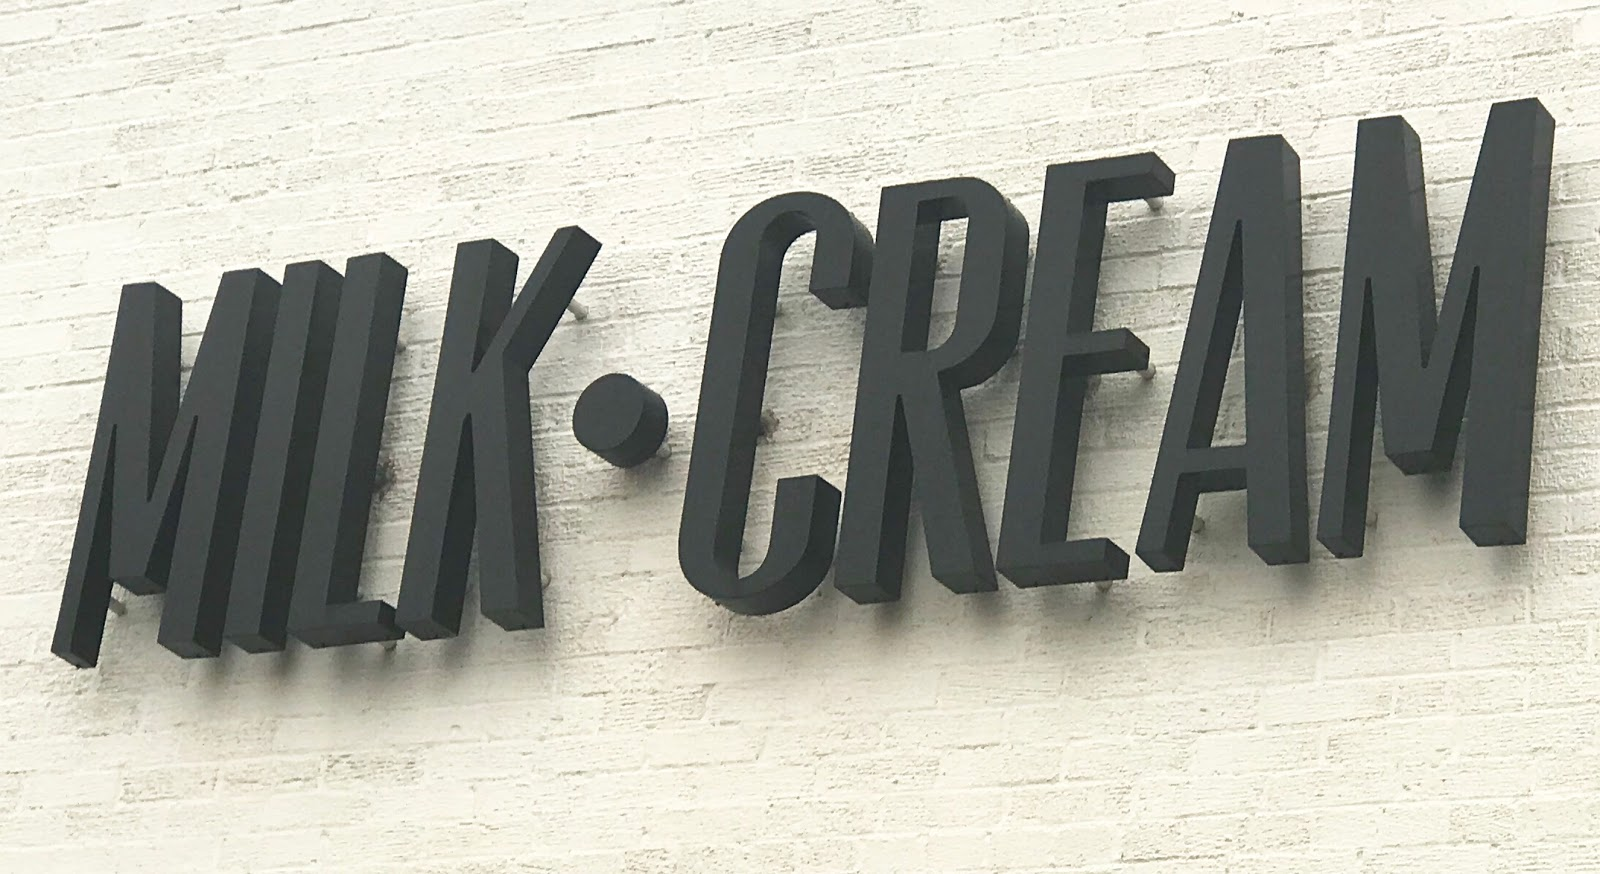 Image: Mild and Cream Sign